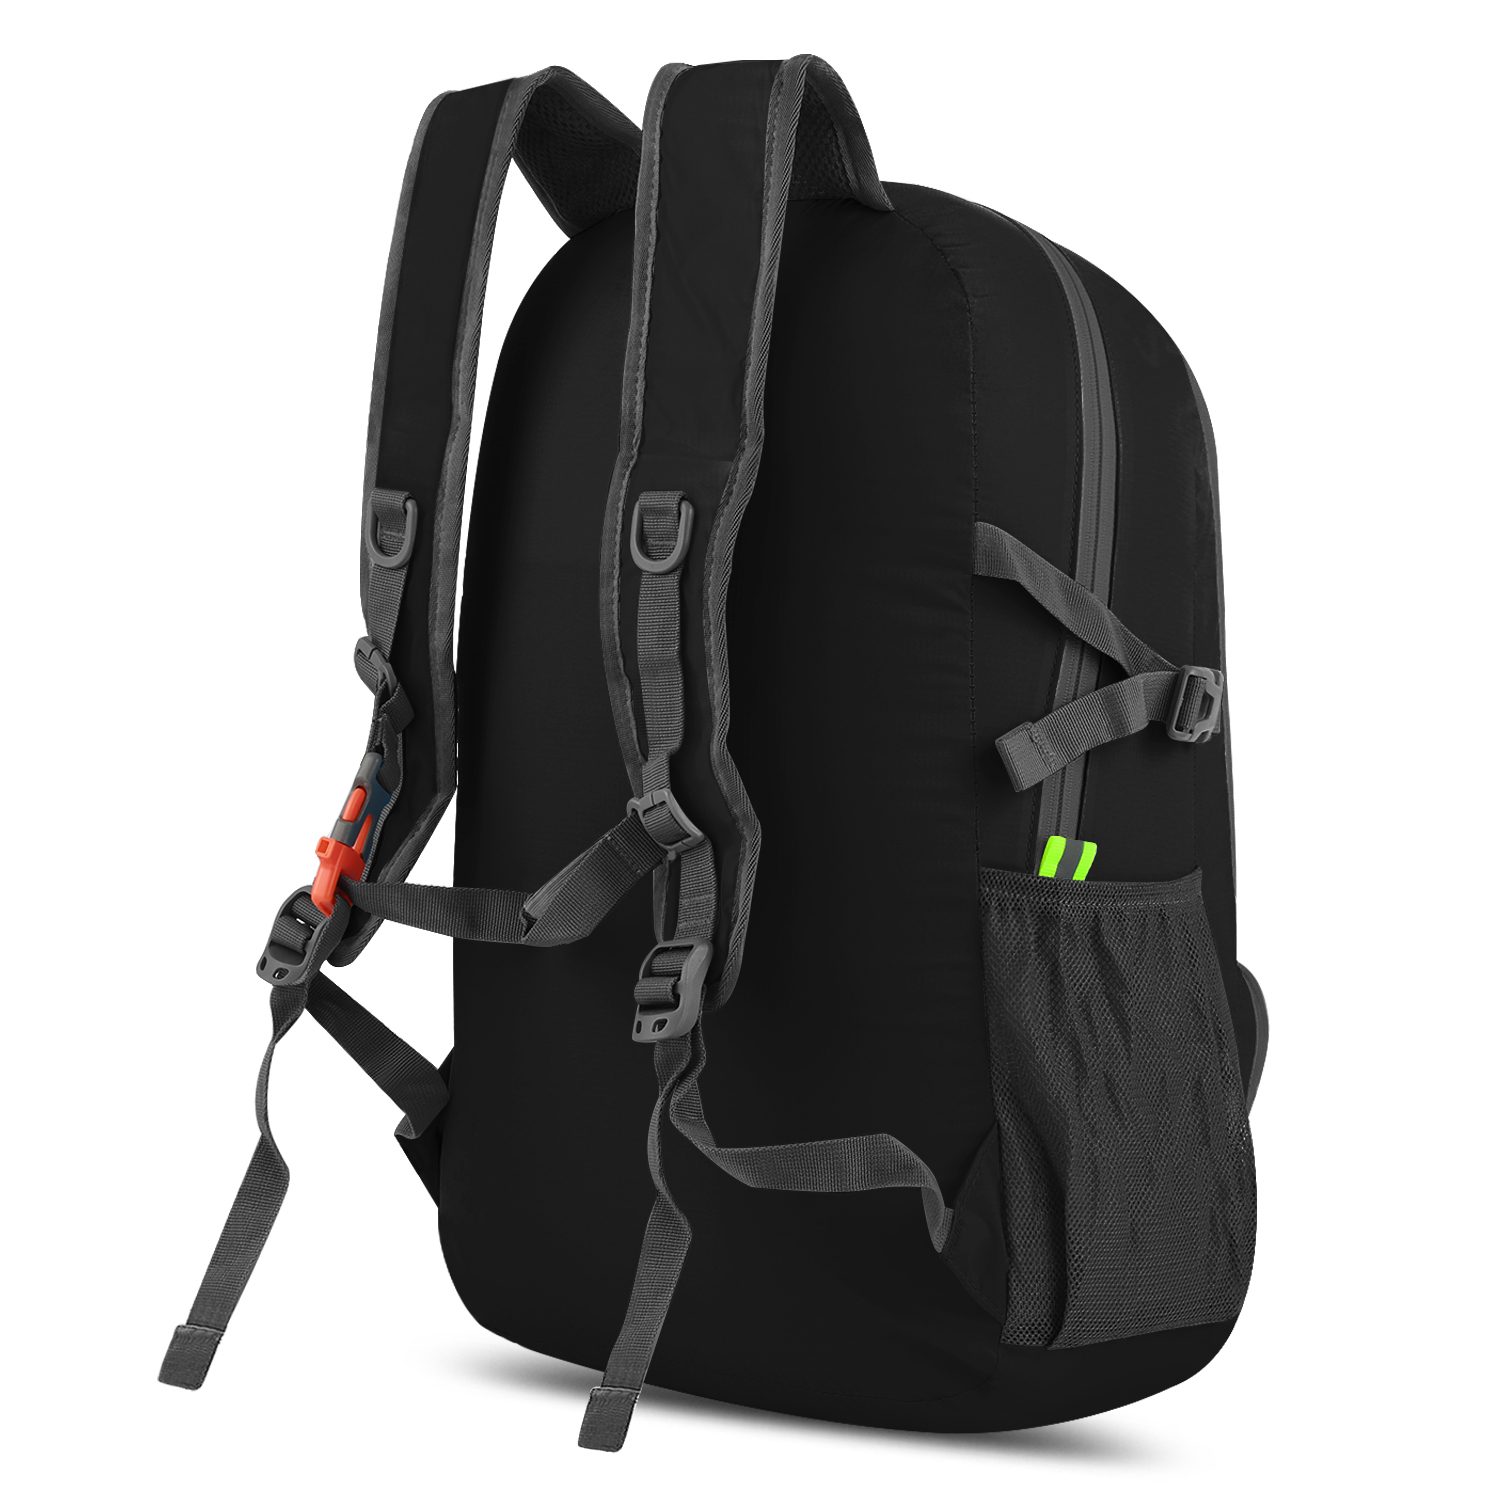 30L Outdoor Waterproof Lightweight Camping Backpack Hiking